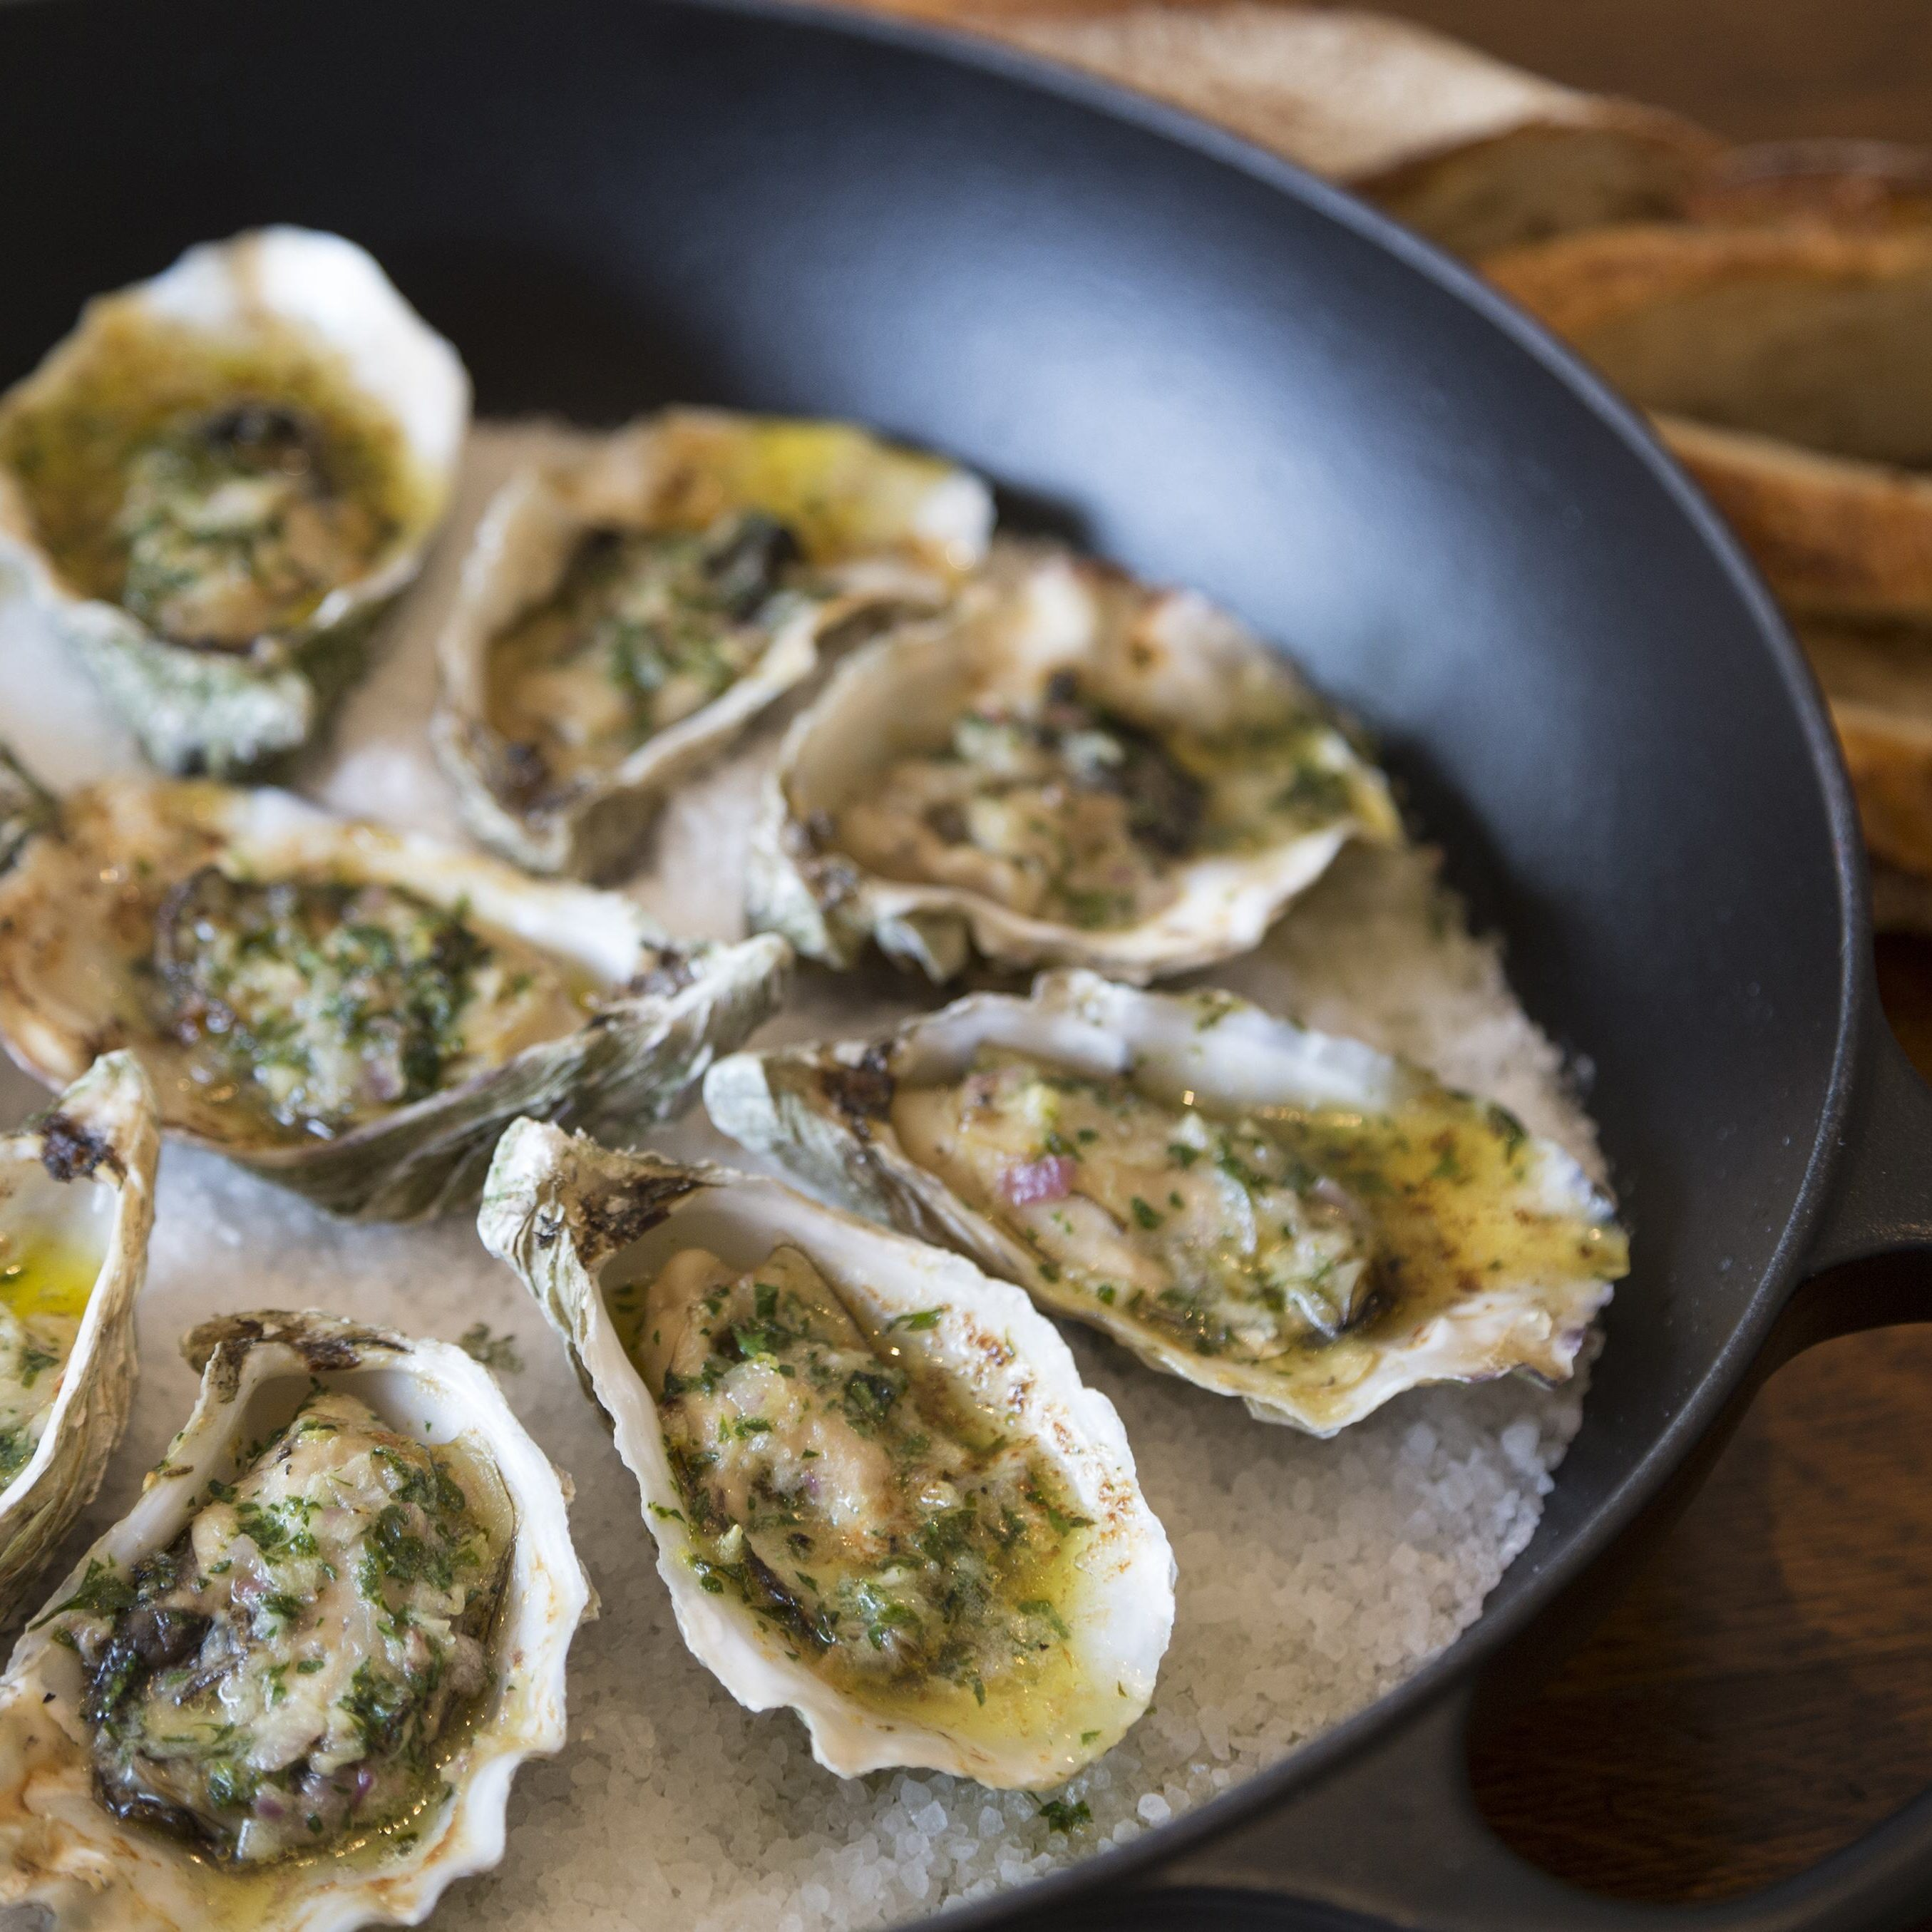 Watch sarah sharratt grilled oysters with butter and garlic sauce as prepared by host sarah sharratt on cooking forumfinder Images